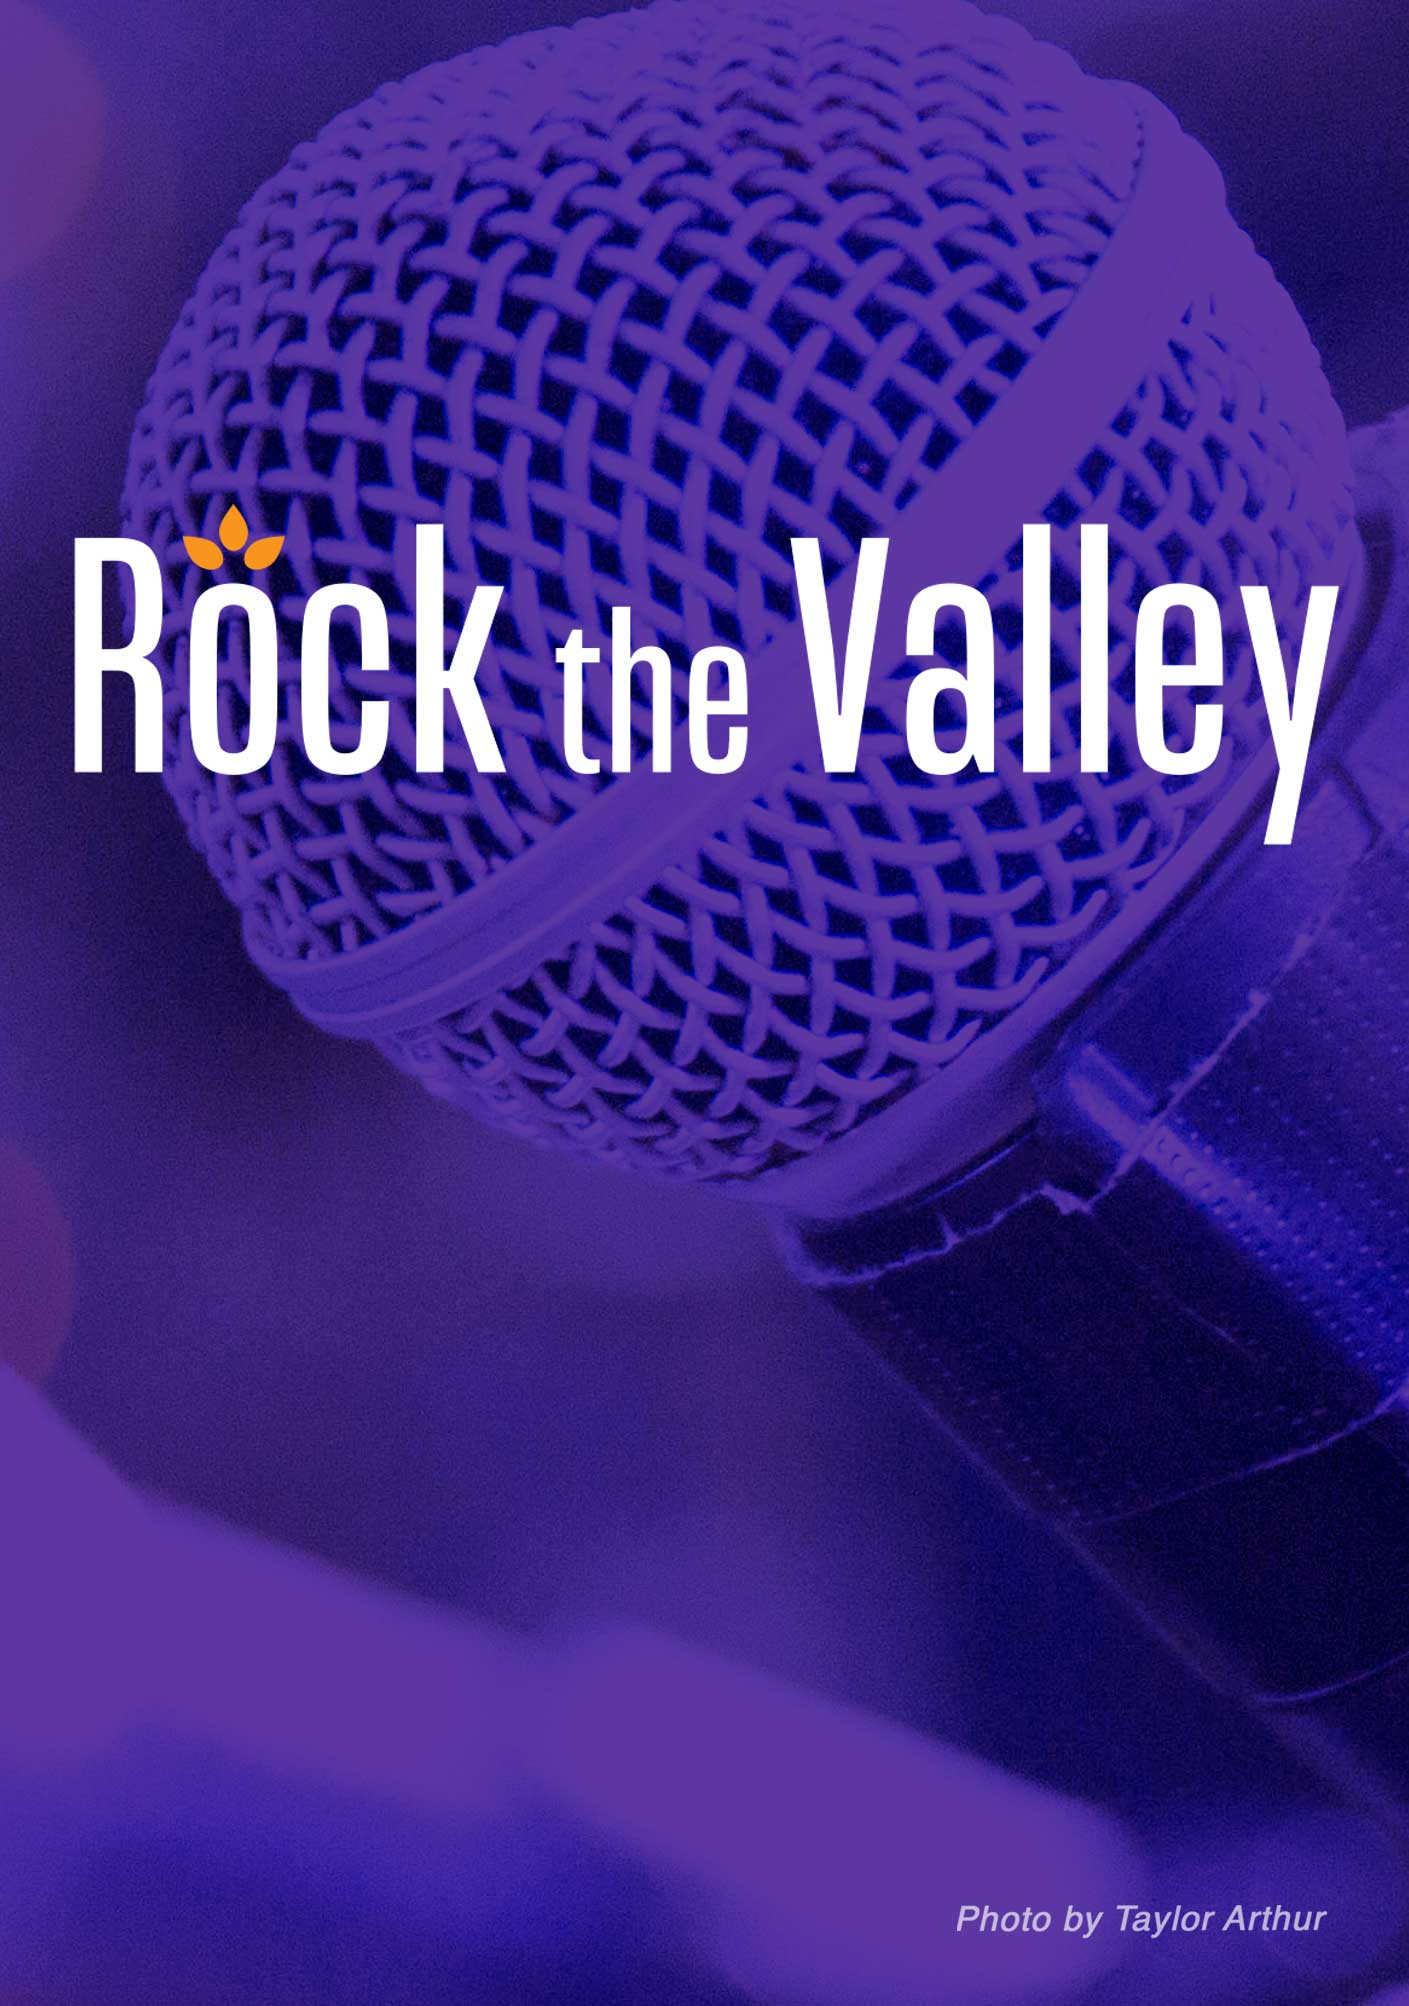 Rock the Valley 2021 tall graphic